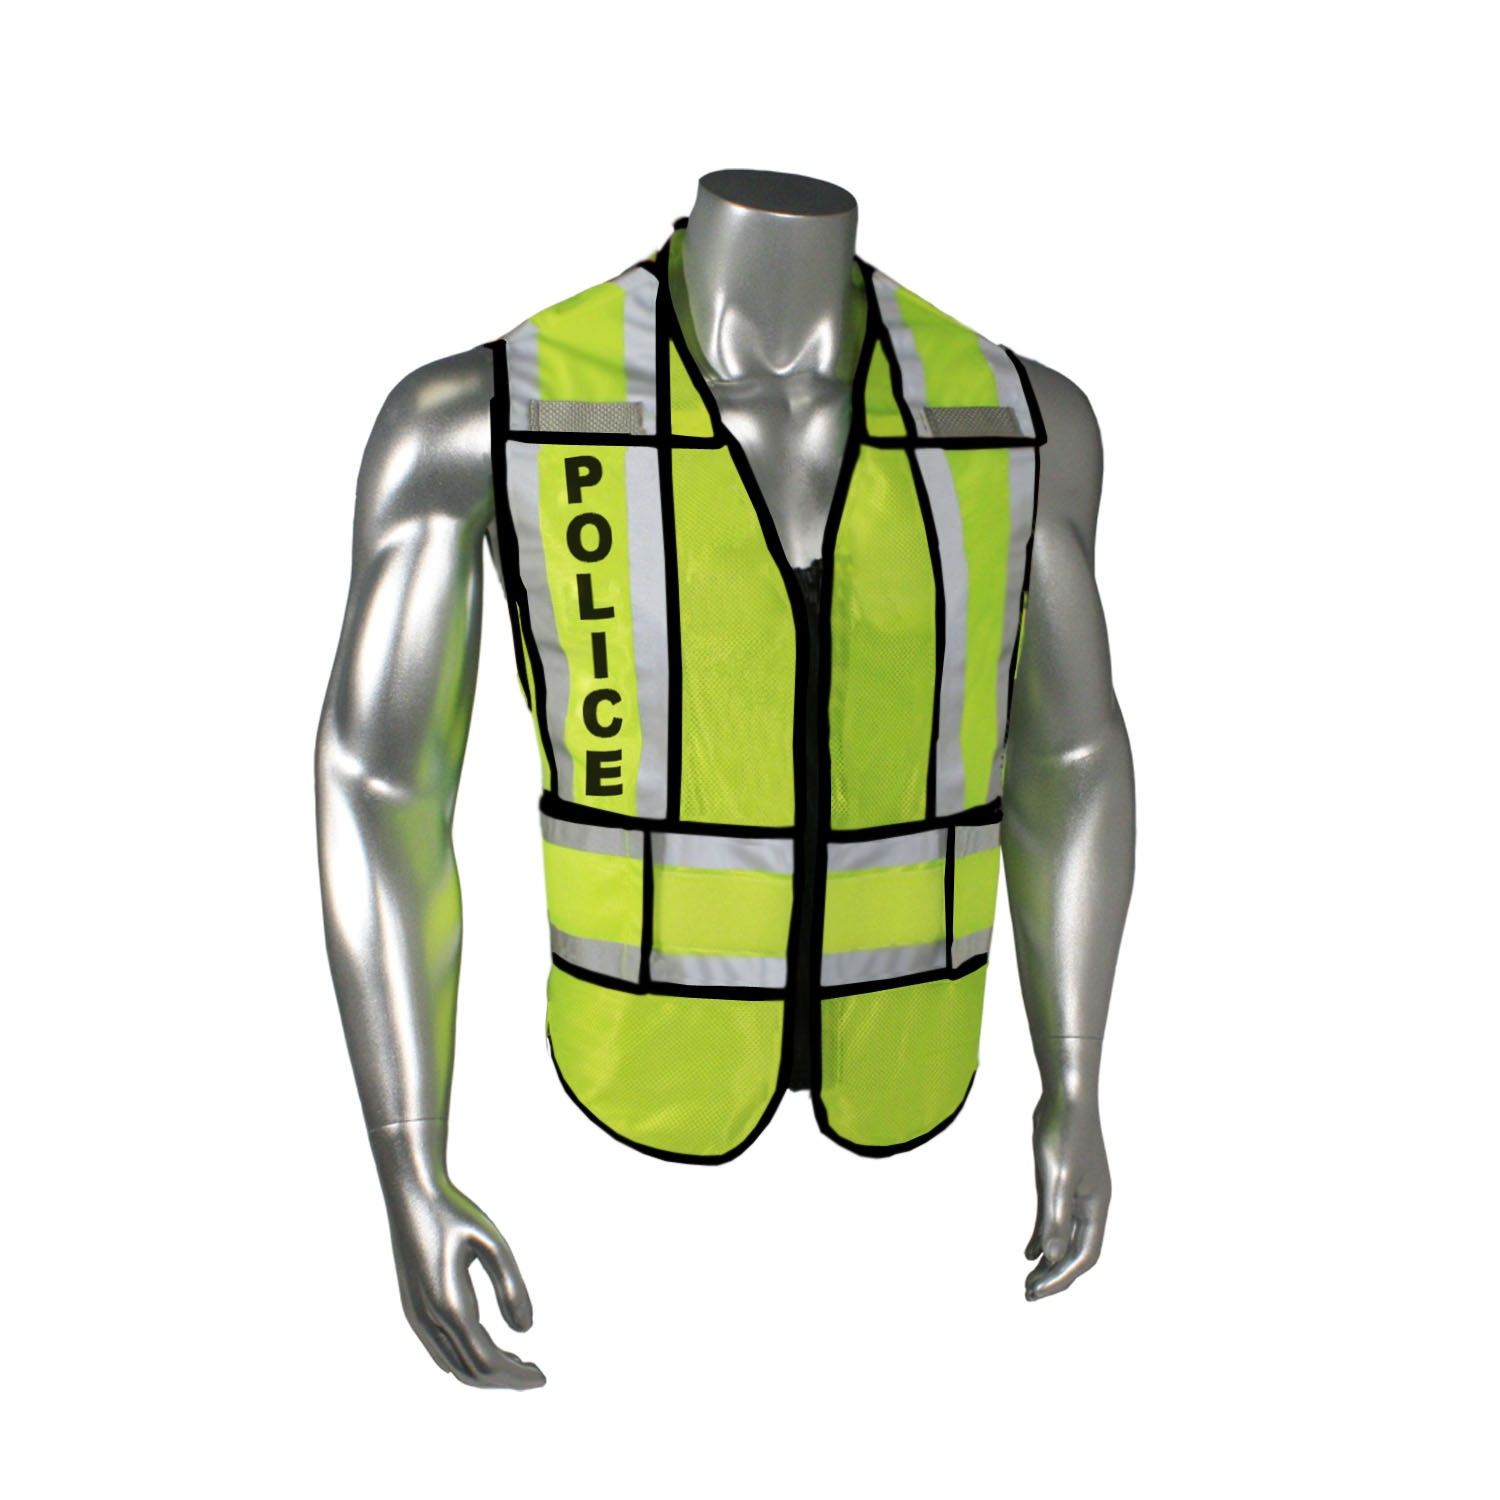 "Breakaway 1"" Split Police Safety Vest, Black Trim (#LHV-207-SPT-BLK-POL)"